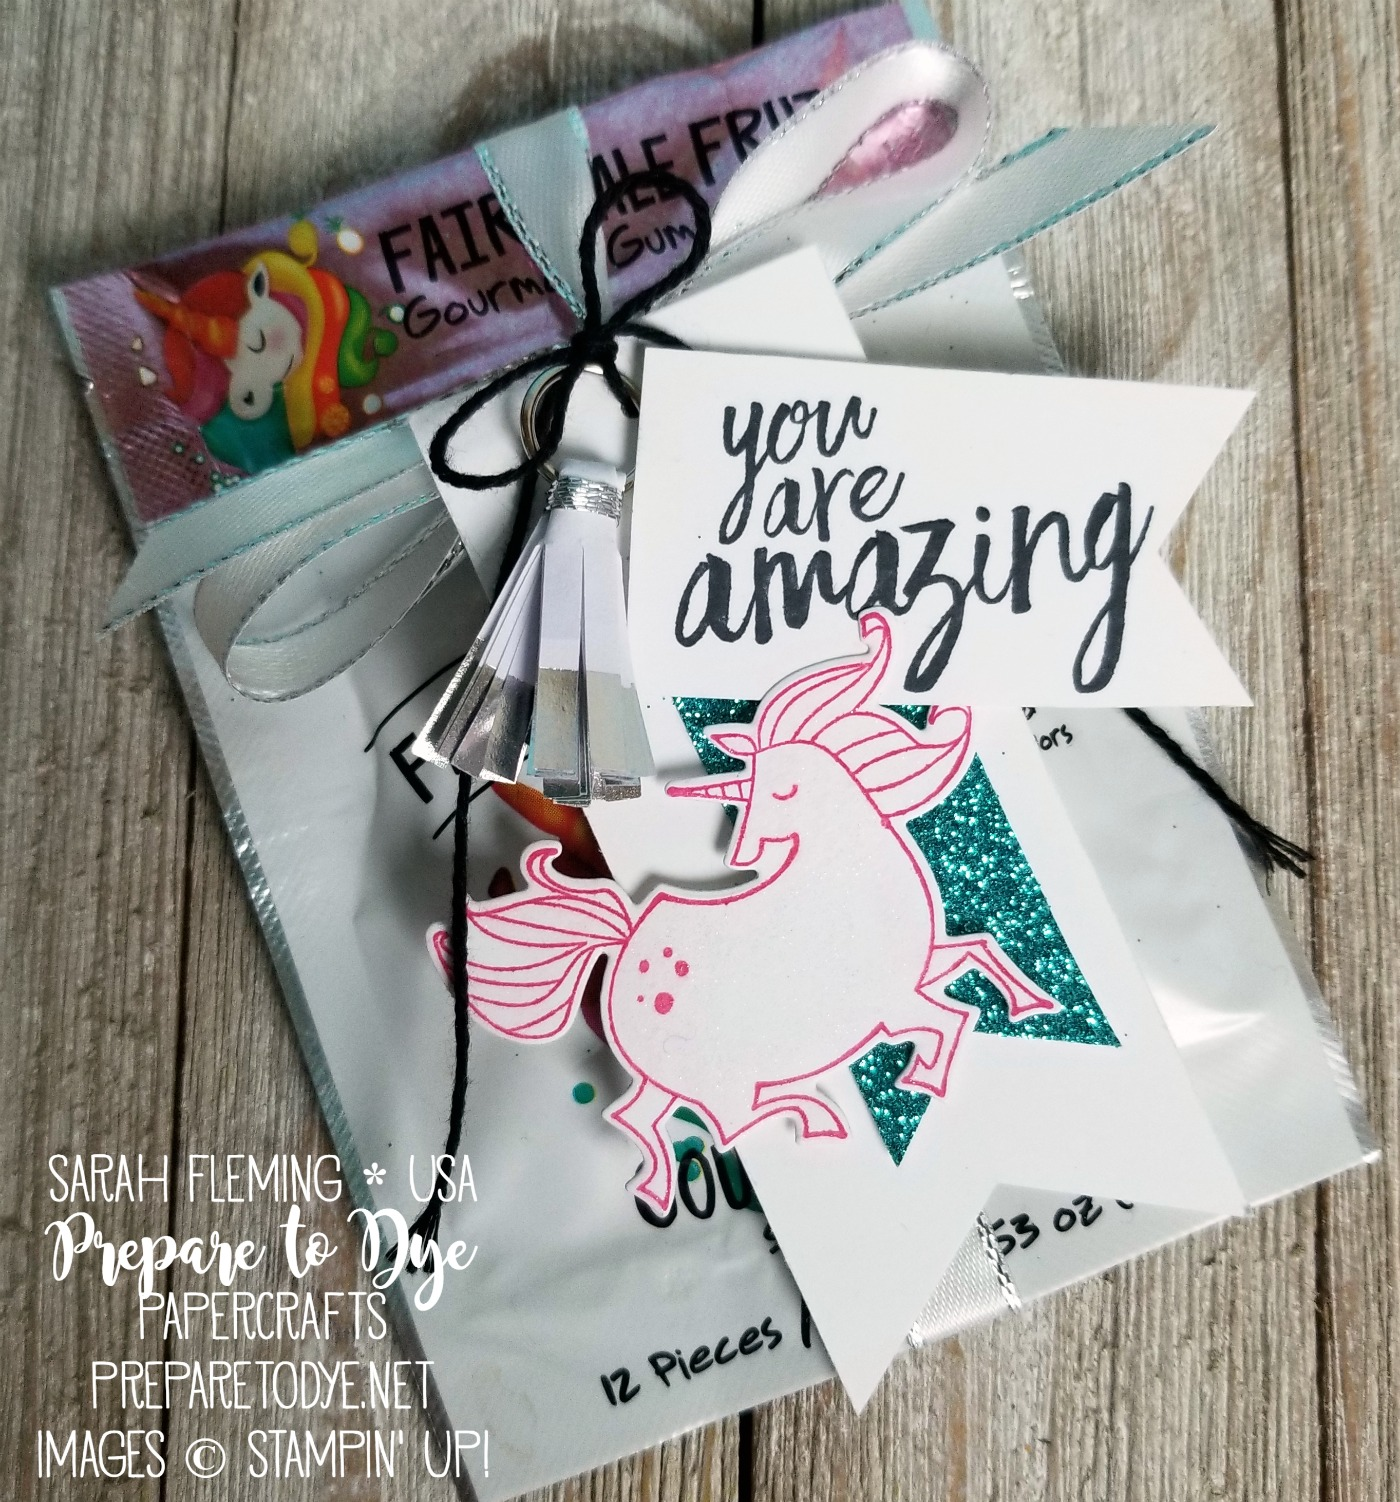 Stampin' Up! Magical Day with Magical Mates framelits, Brusho, All Things Thanks, Magical Mermaid - handmade unicorn magic gift set with Fairytale Gum - Sarah Fleming - Prepare to Dye Papercrafts